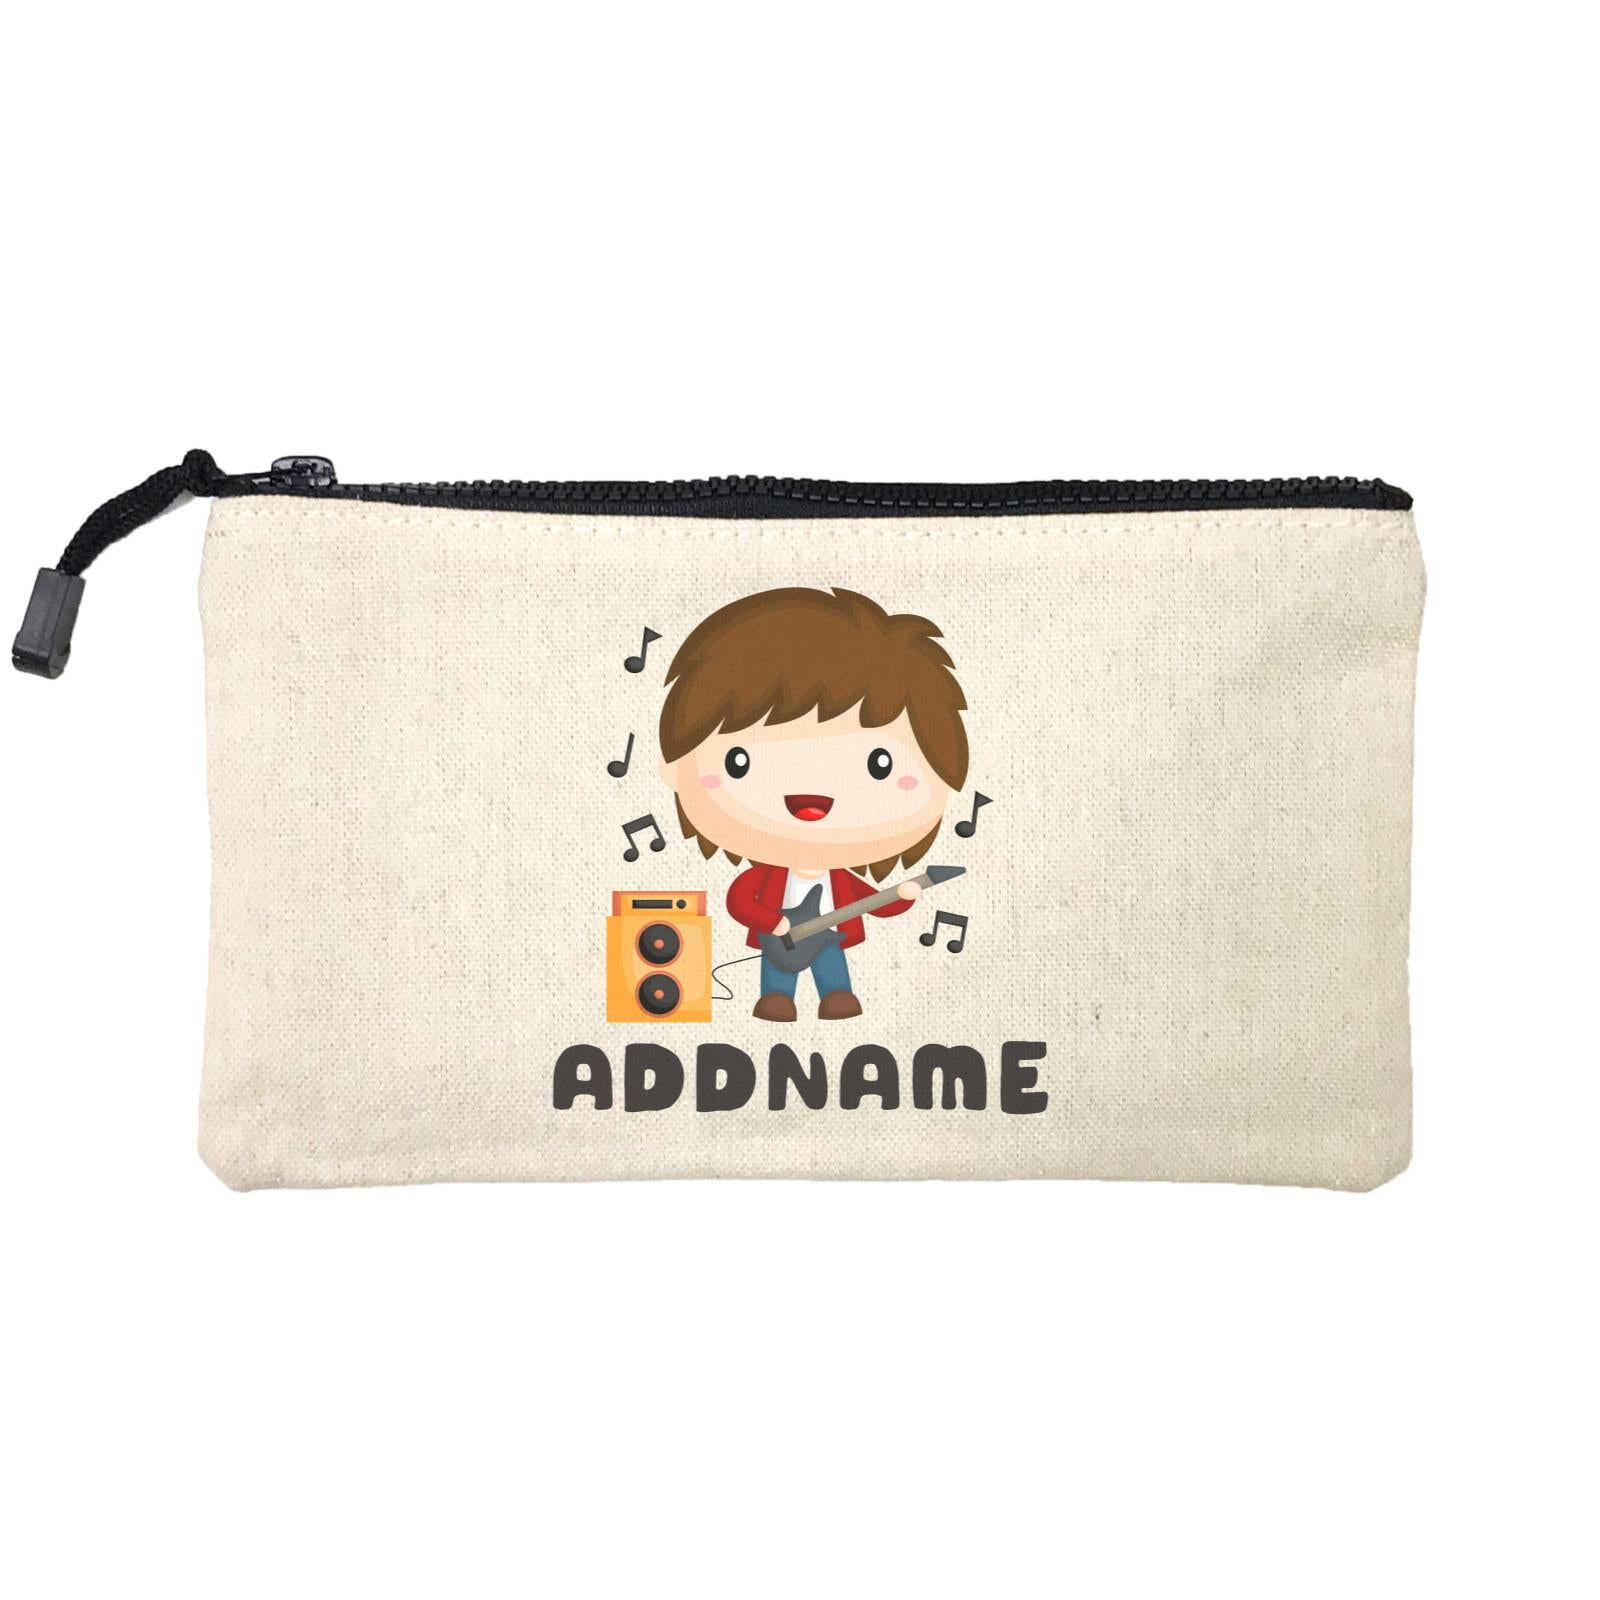 Birthday Music Band Boy Playing Bass Addname Mini Accessories Stationery Pouch